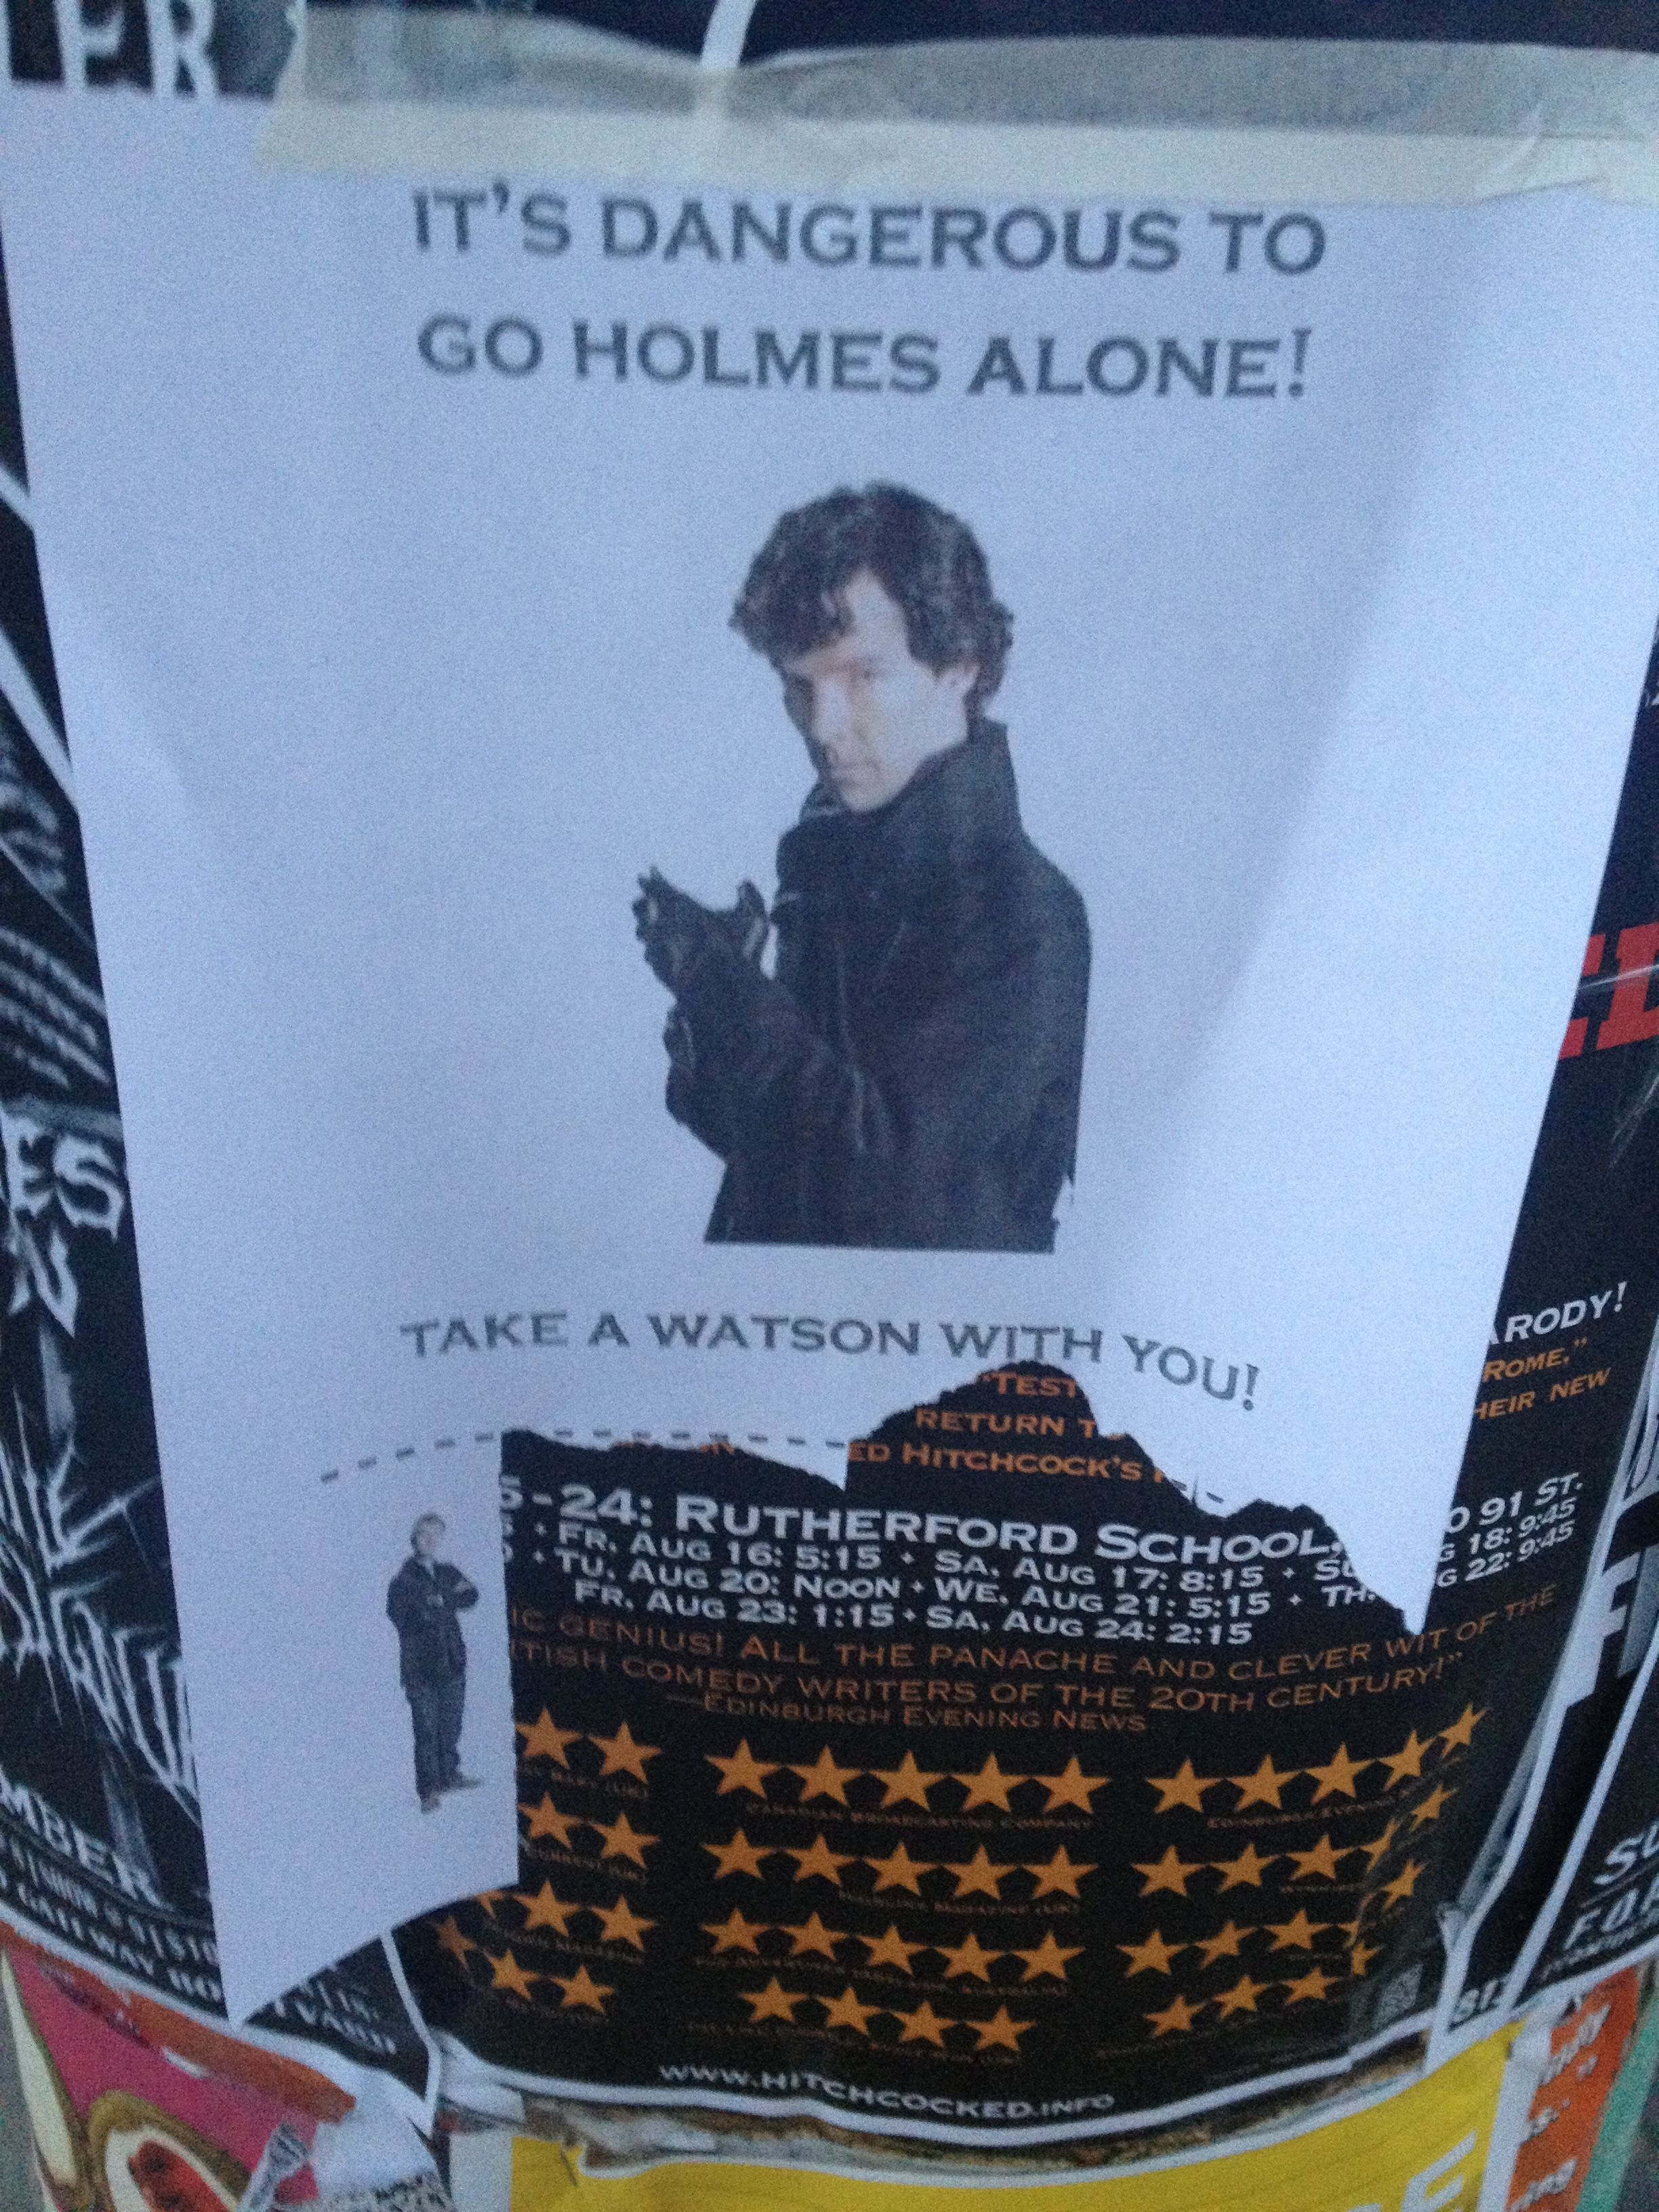 """""""It's not safe to go Holmes alone, take a Watson with you!"""" Found this in a not-so-safe part of town :)"""